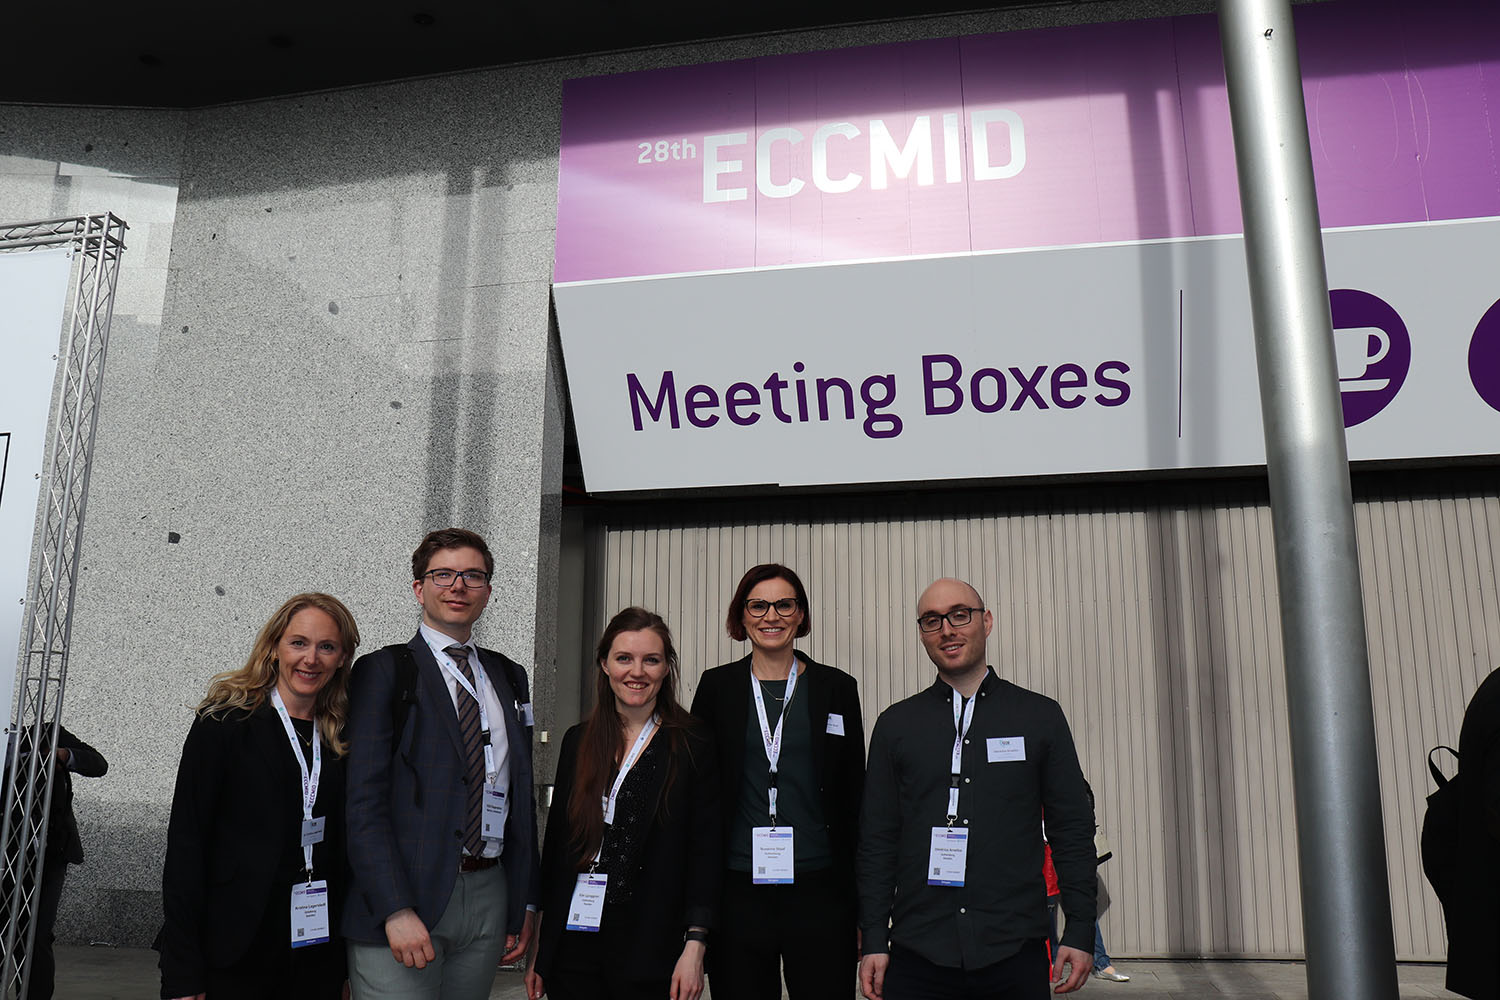 The 1928D team at ECCMID standing in front of entrance